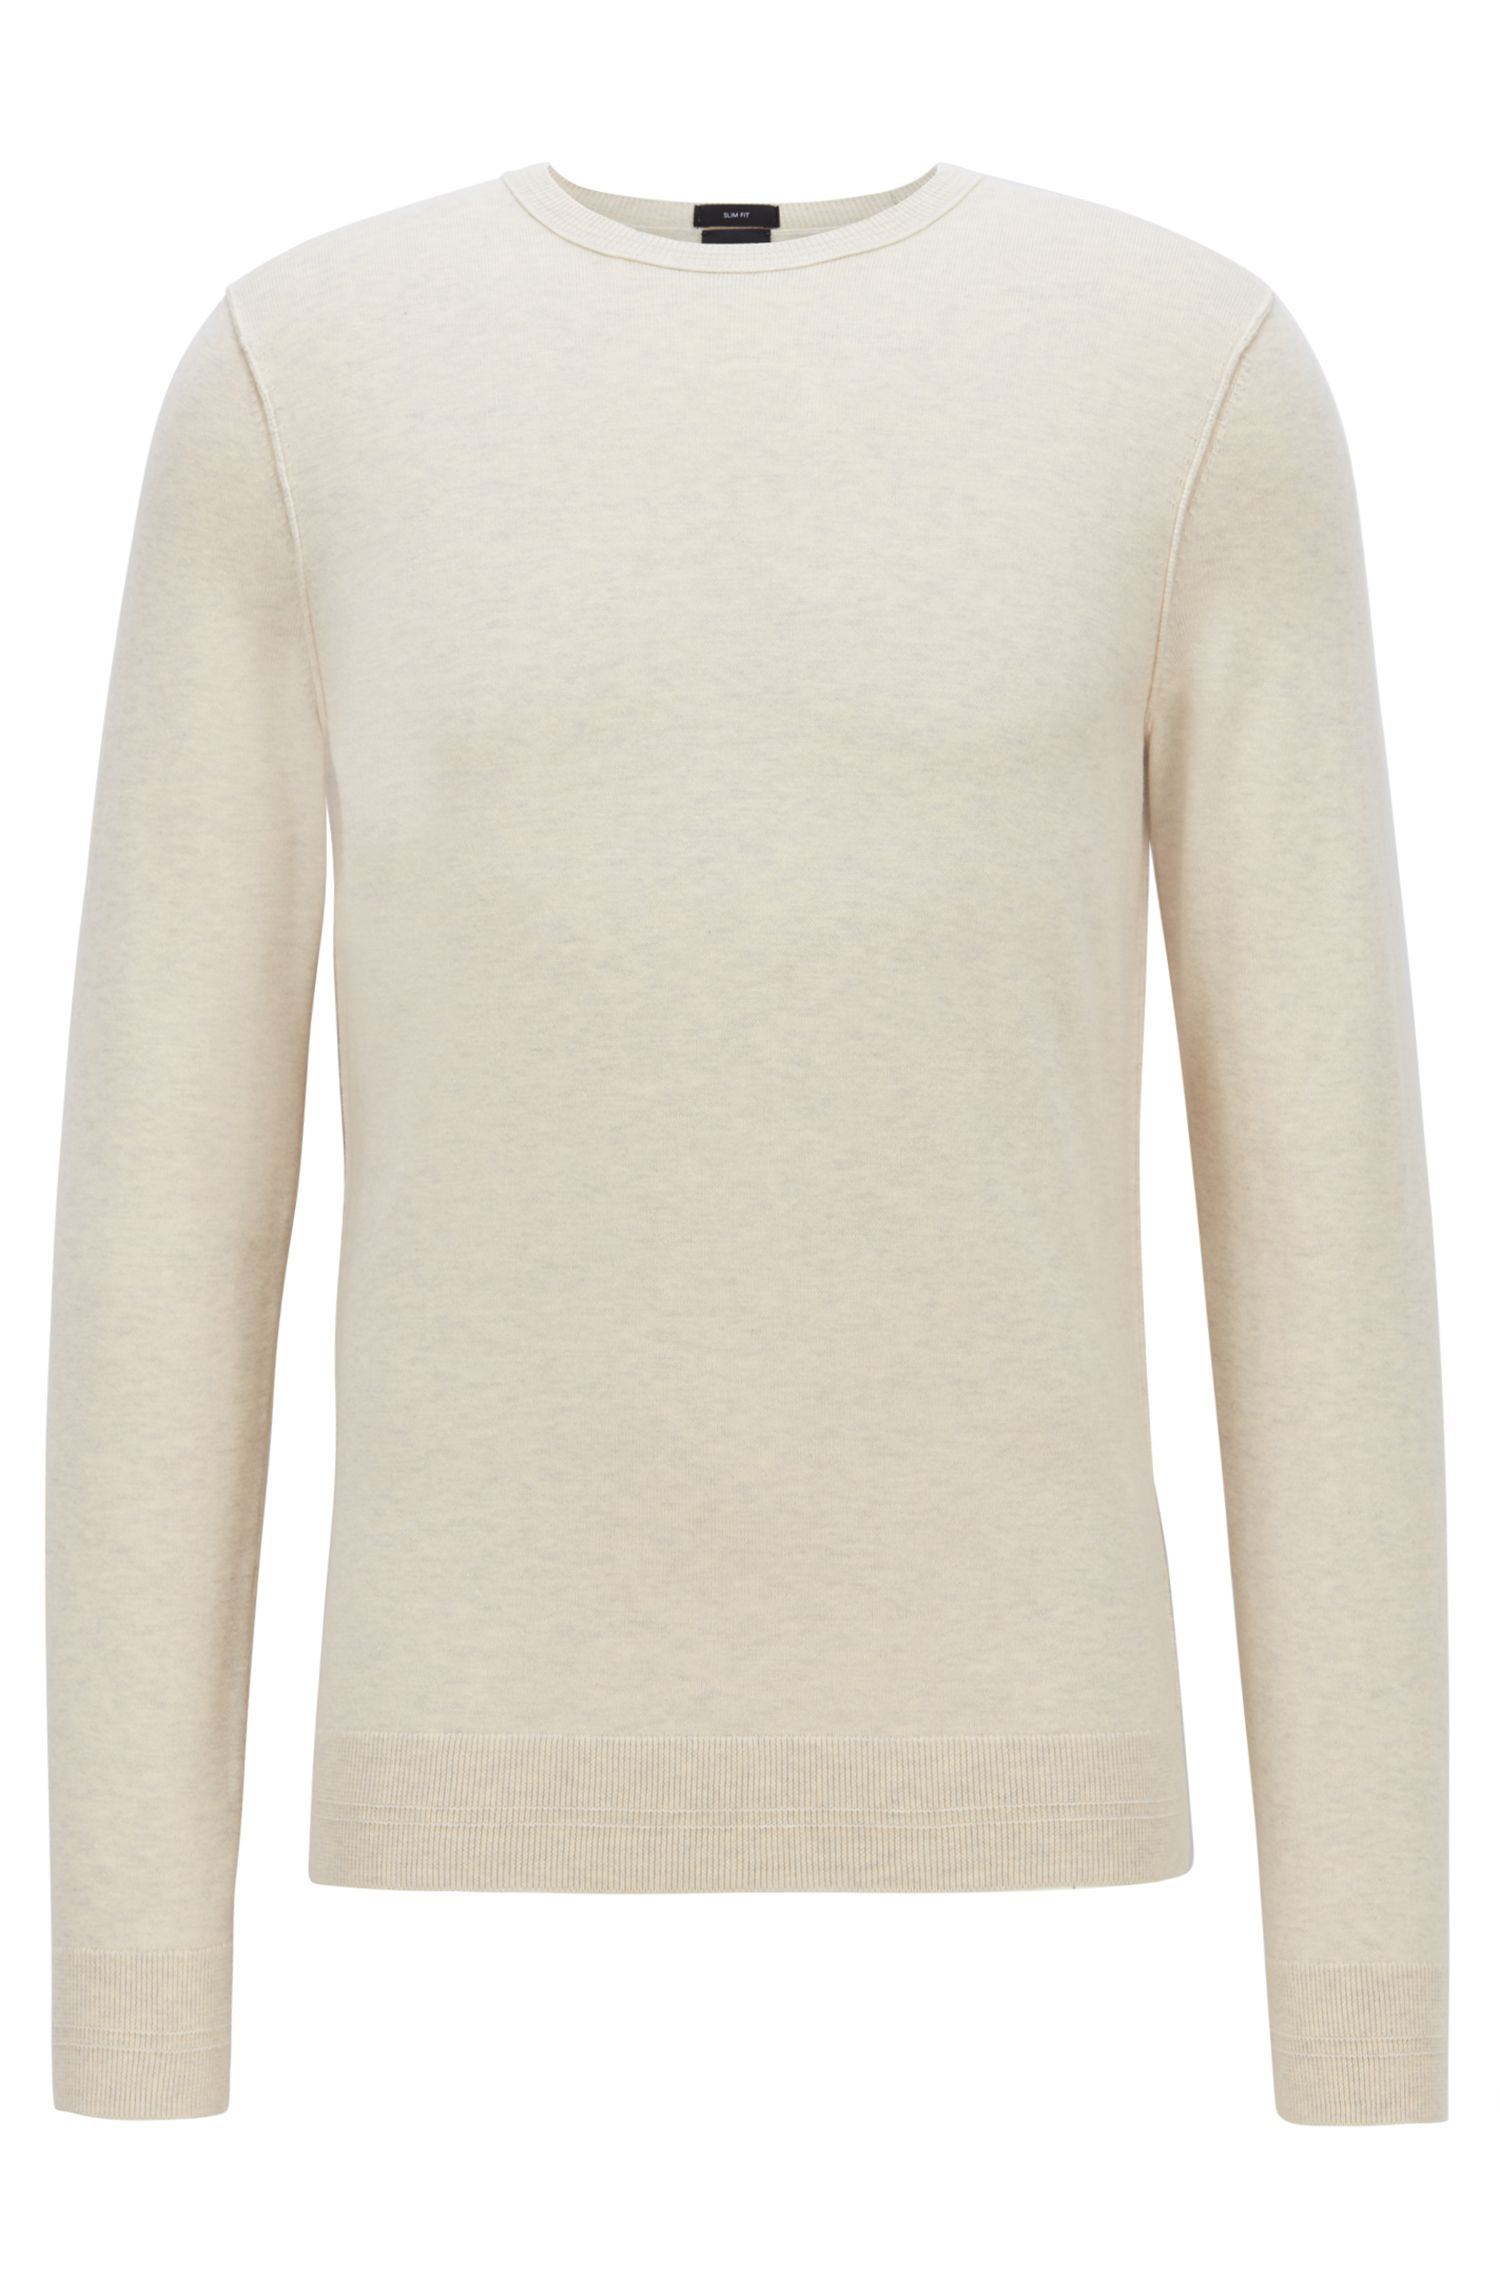 Crew-neck cotton-blend sweater with 3D ribbed accents, Light Beige